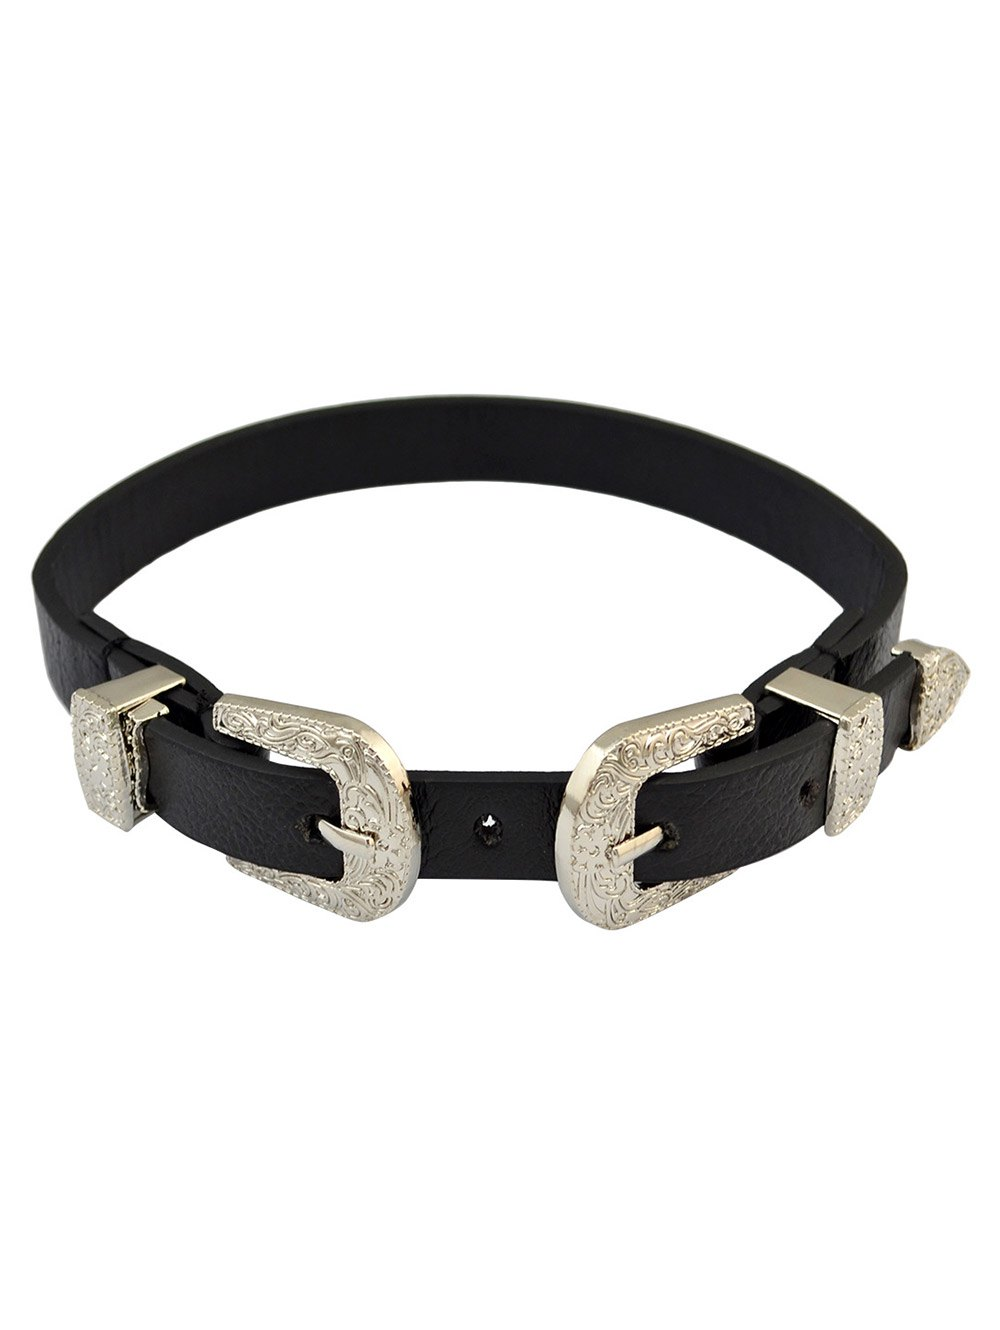 Artificial Leather Belt Shape Choker Necklace